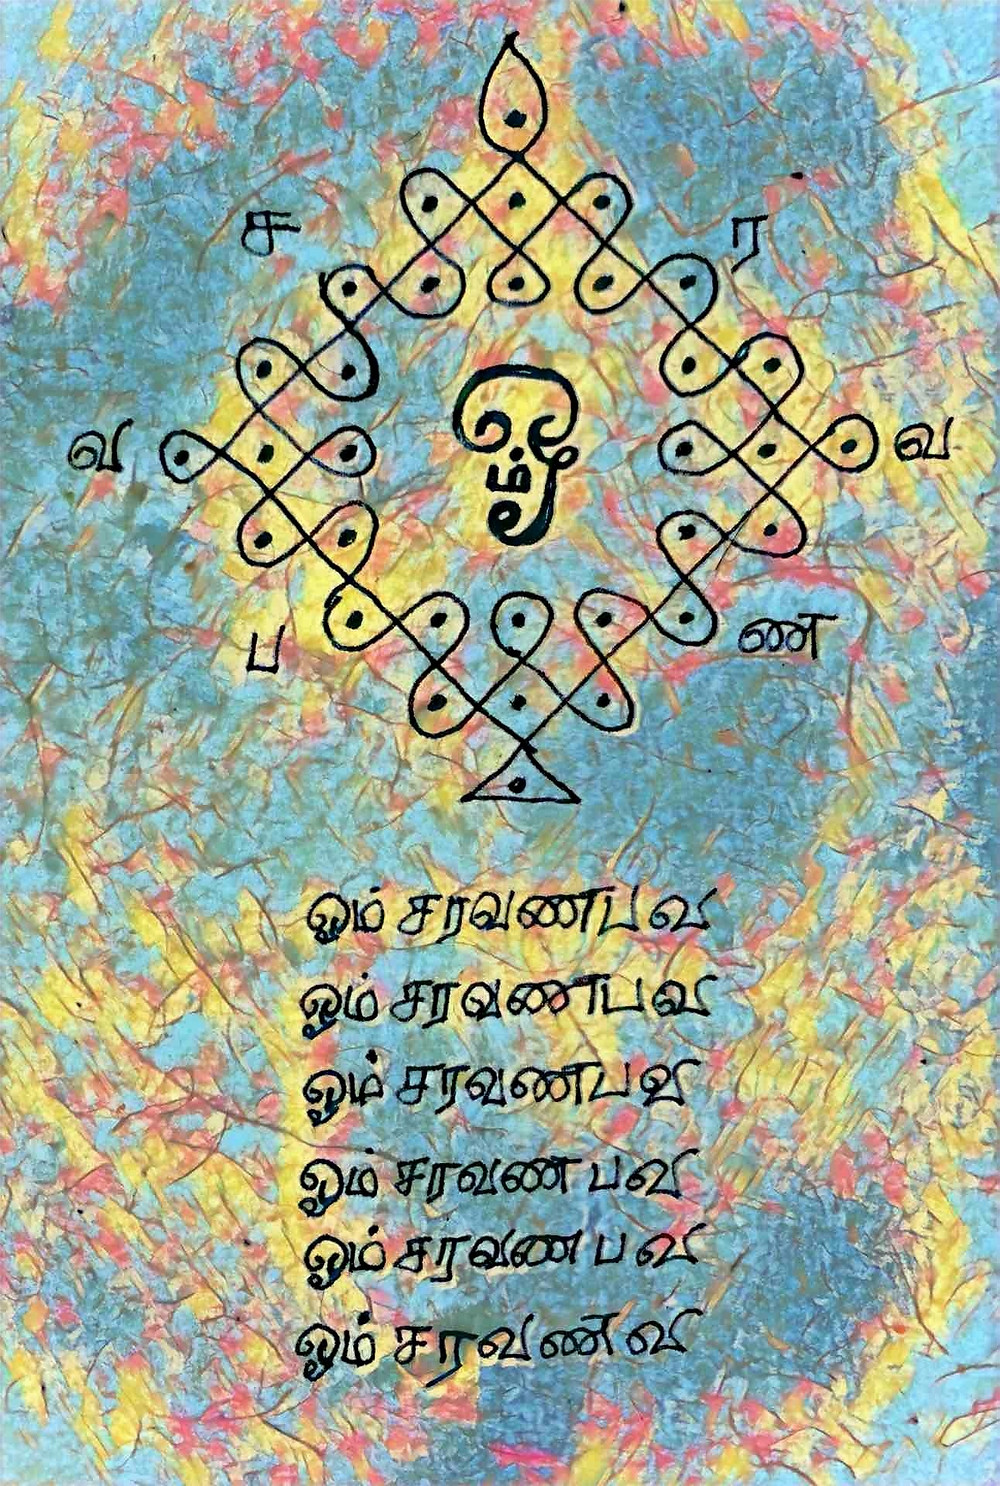 Divine Art of Neelam Sundaram | Meditate on Sakti, feminine energy, who empowers this form. Meditate on Sakti, feminine energy, who  transcends this form.  Your Guru nearby. Your Guru Beyond. Sakti, feminine energy,  empowering all forms, transcending all forms. | Aum Sundaram Aumkaar Sundaram